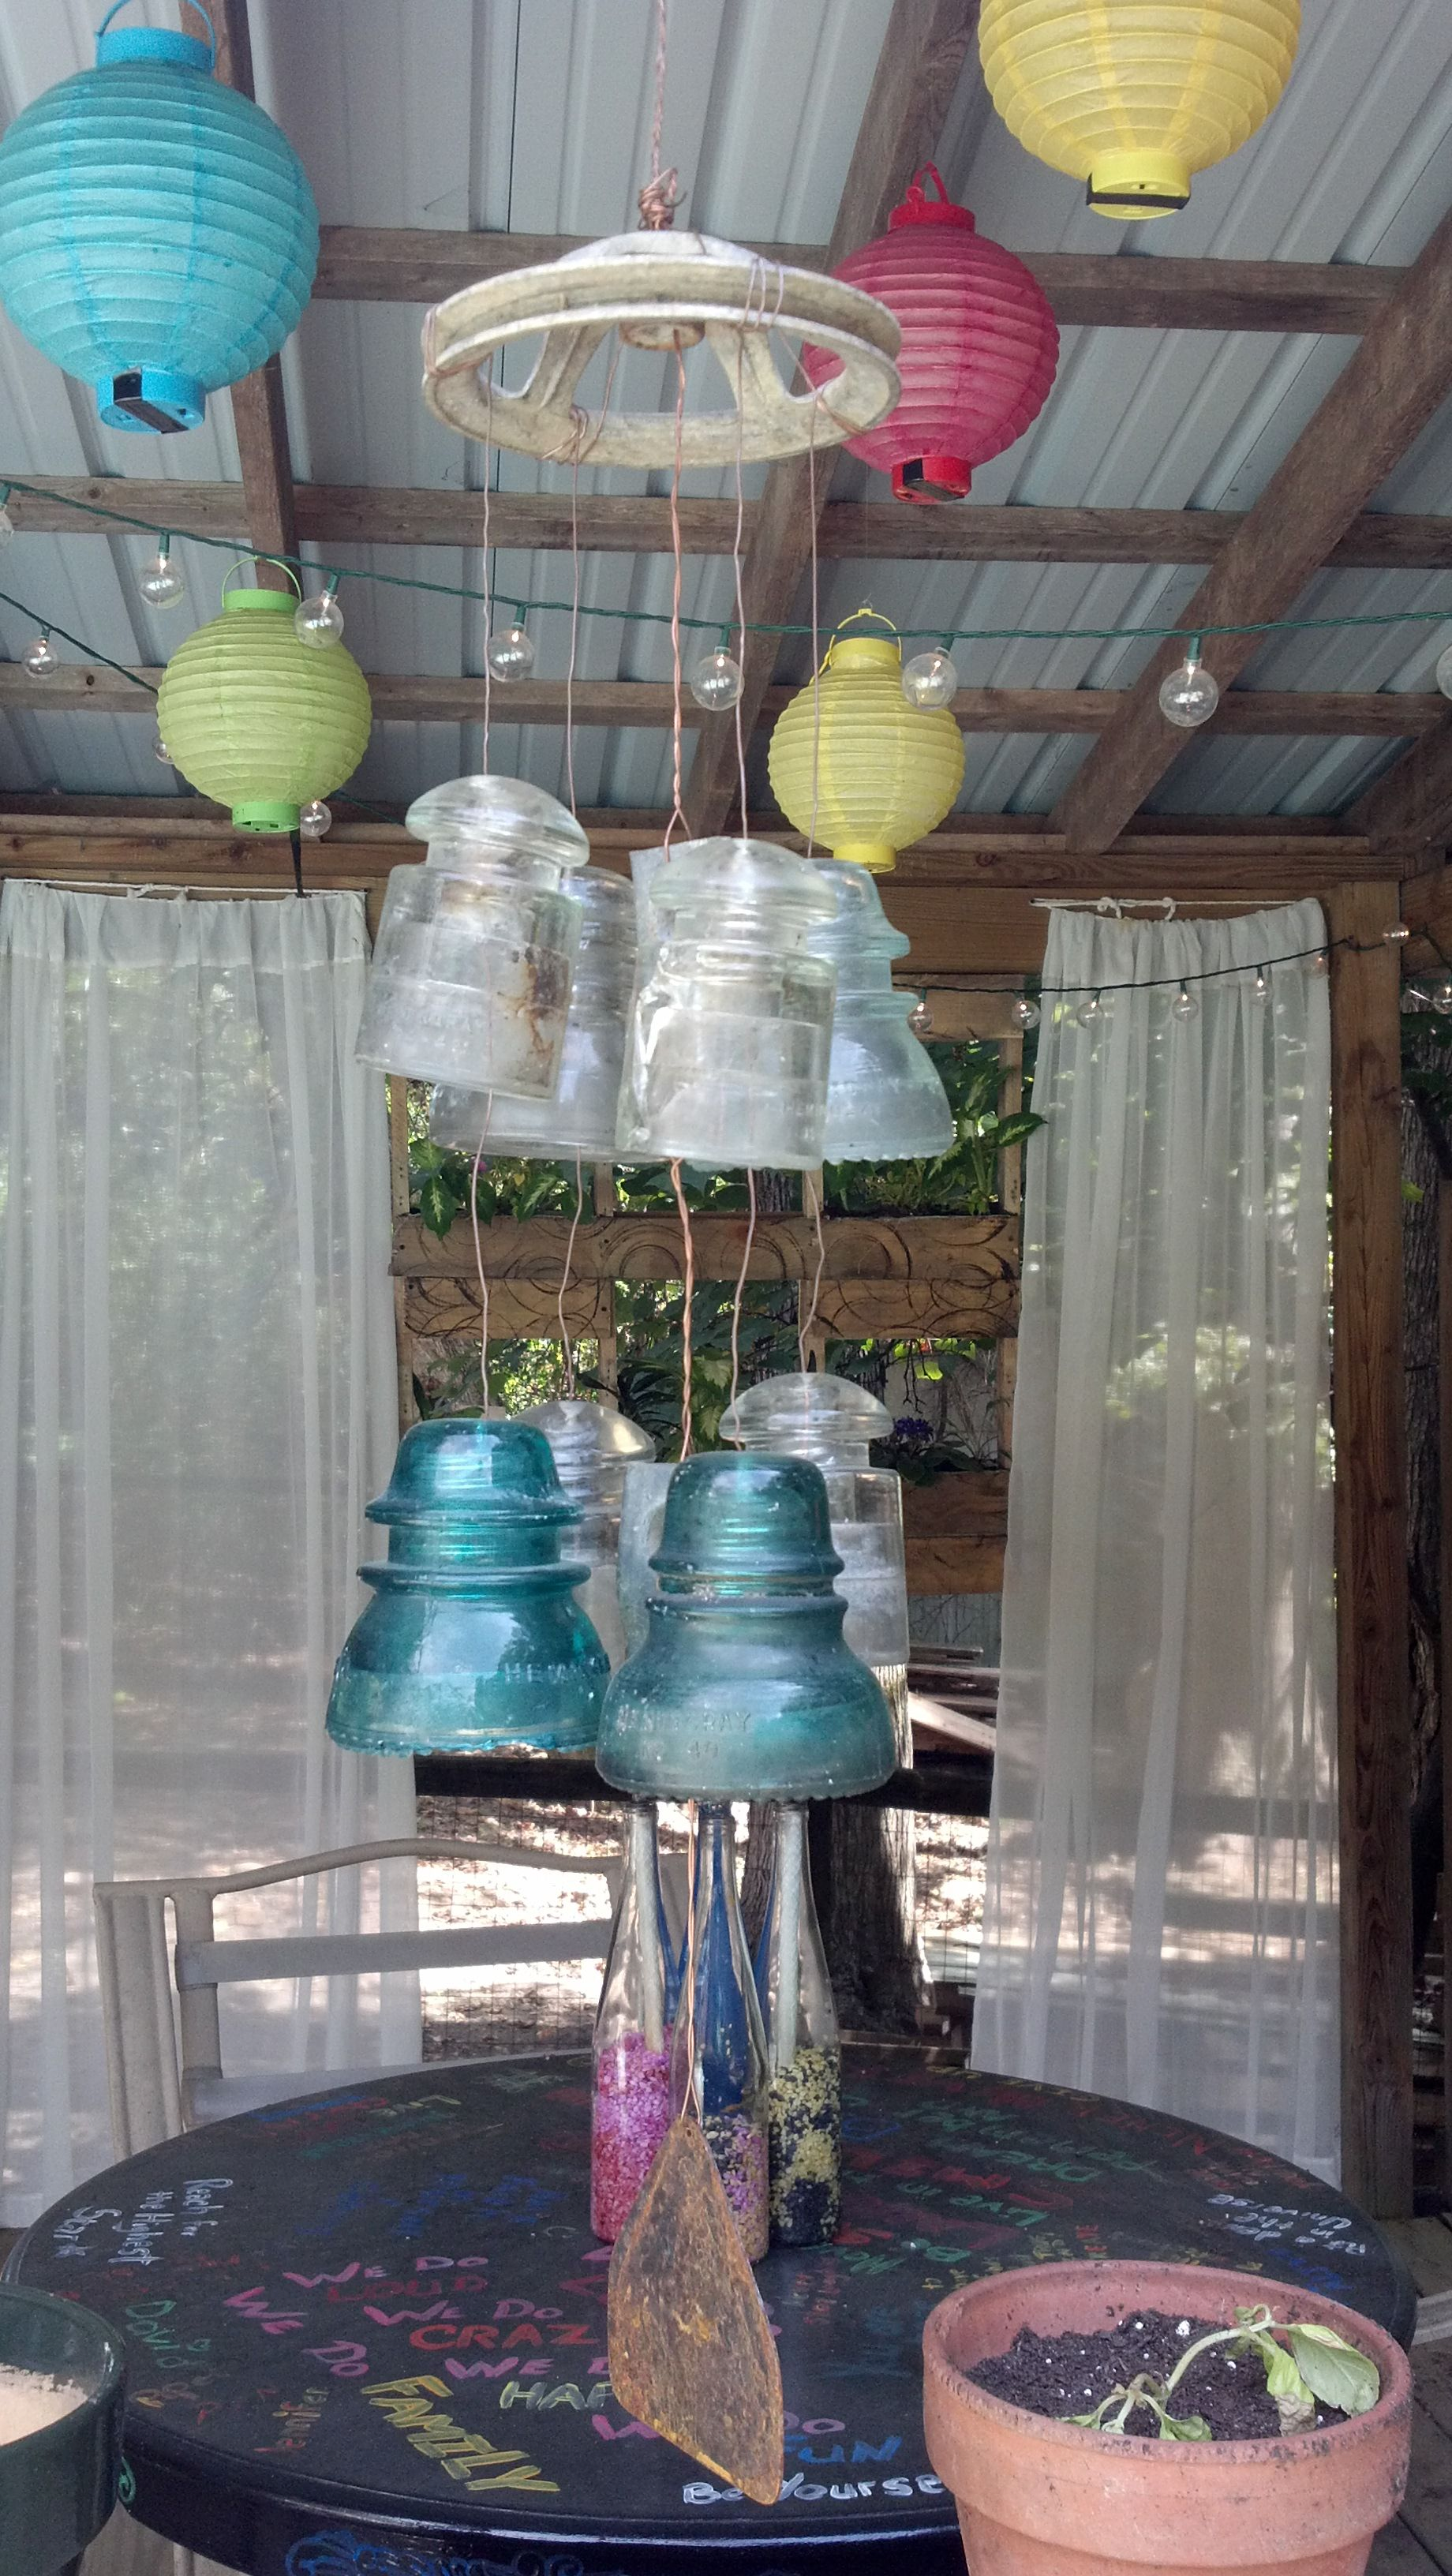 Wind chime made from glass insulators